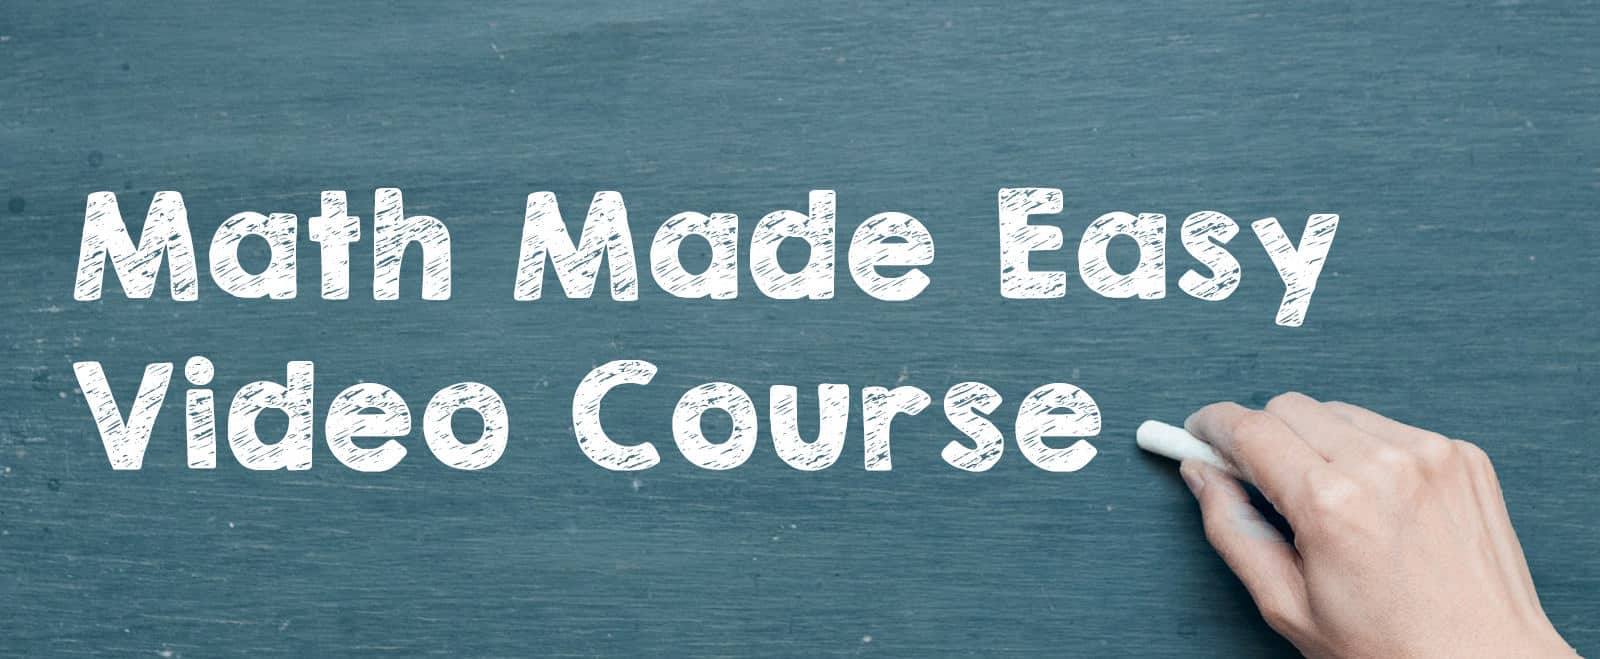 Math made easy video course